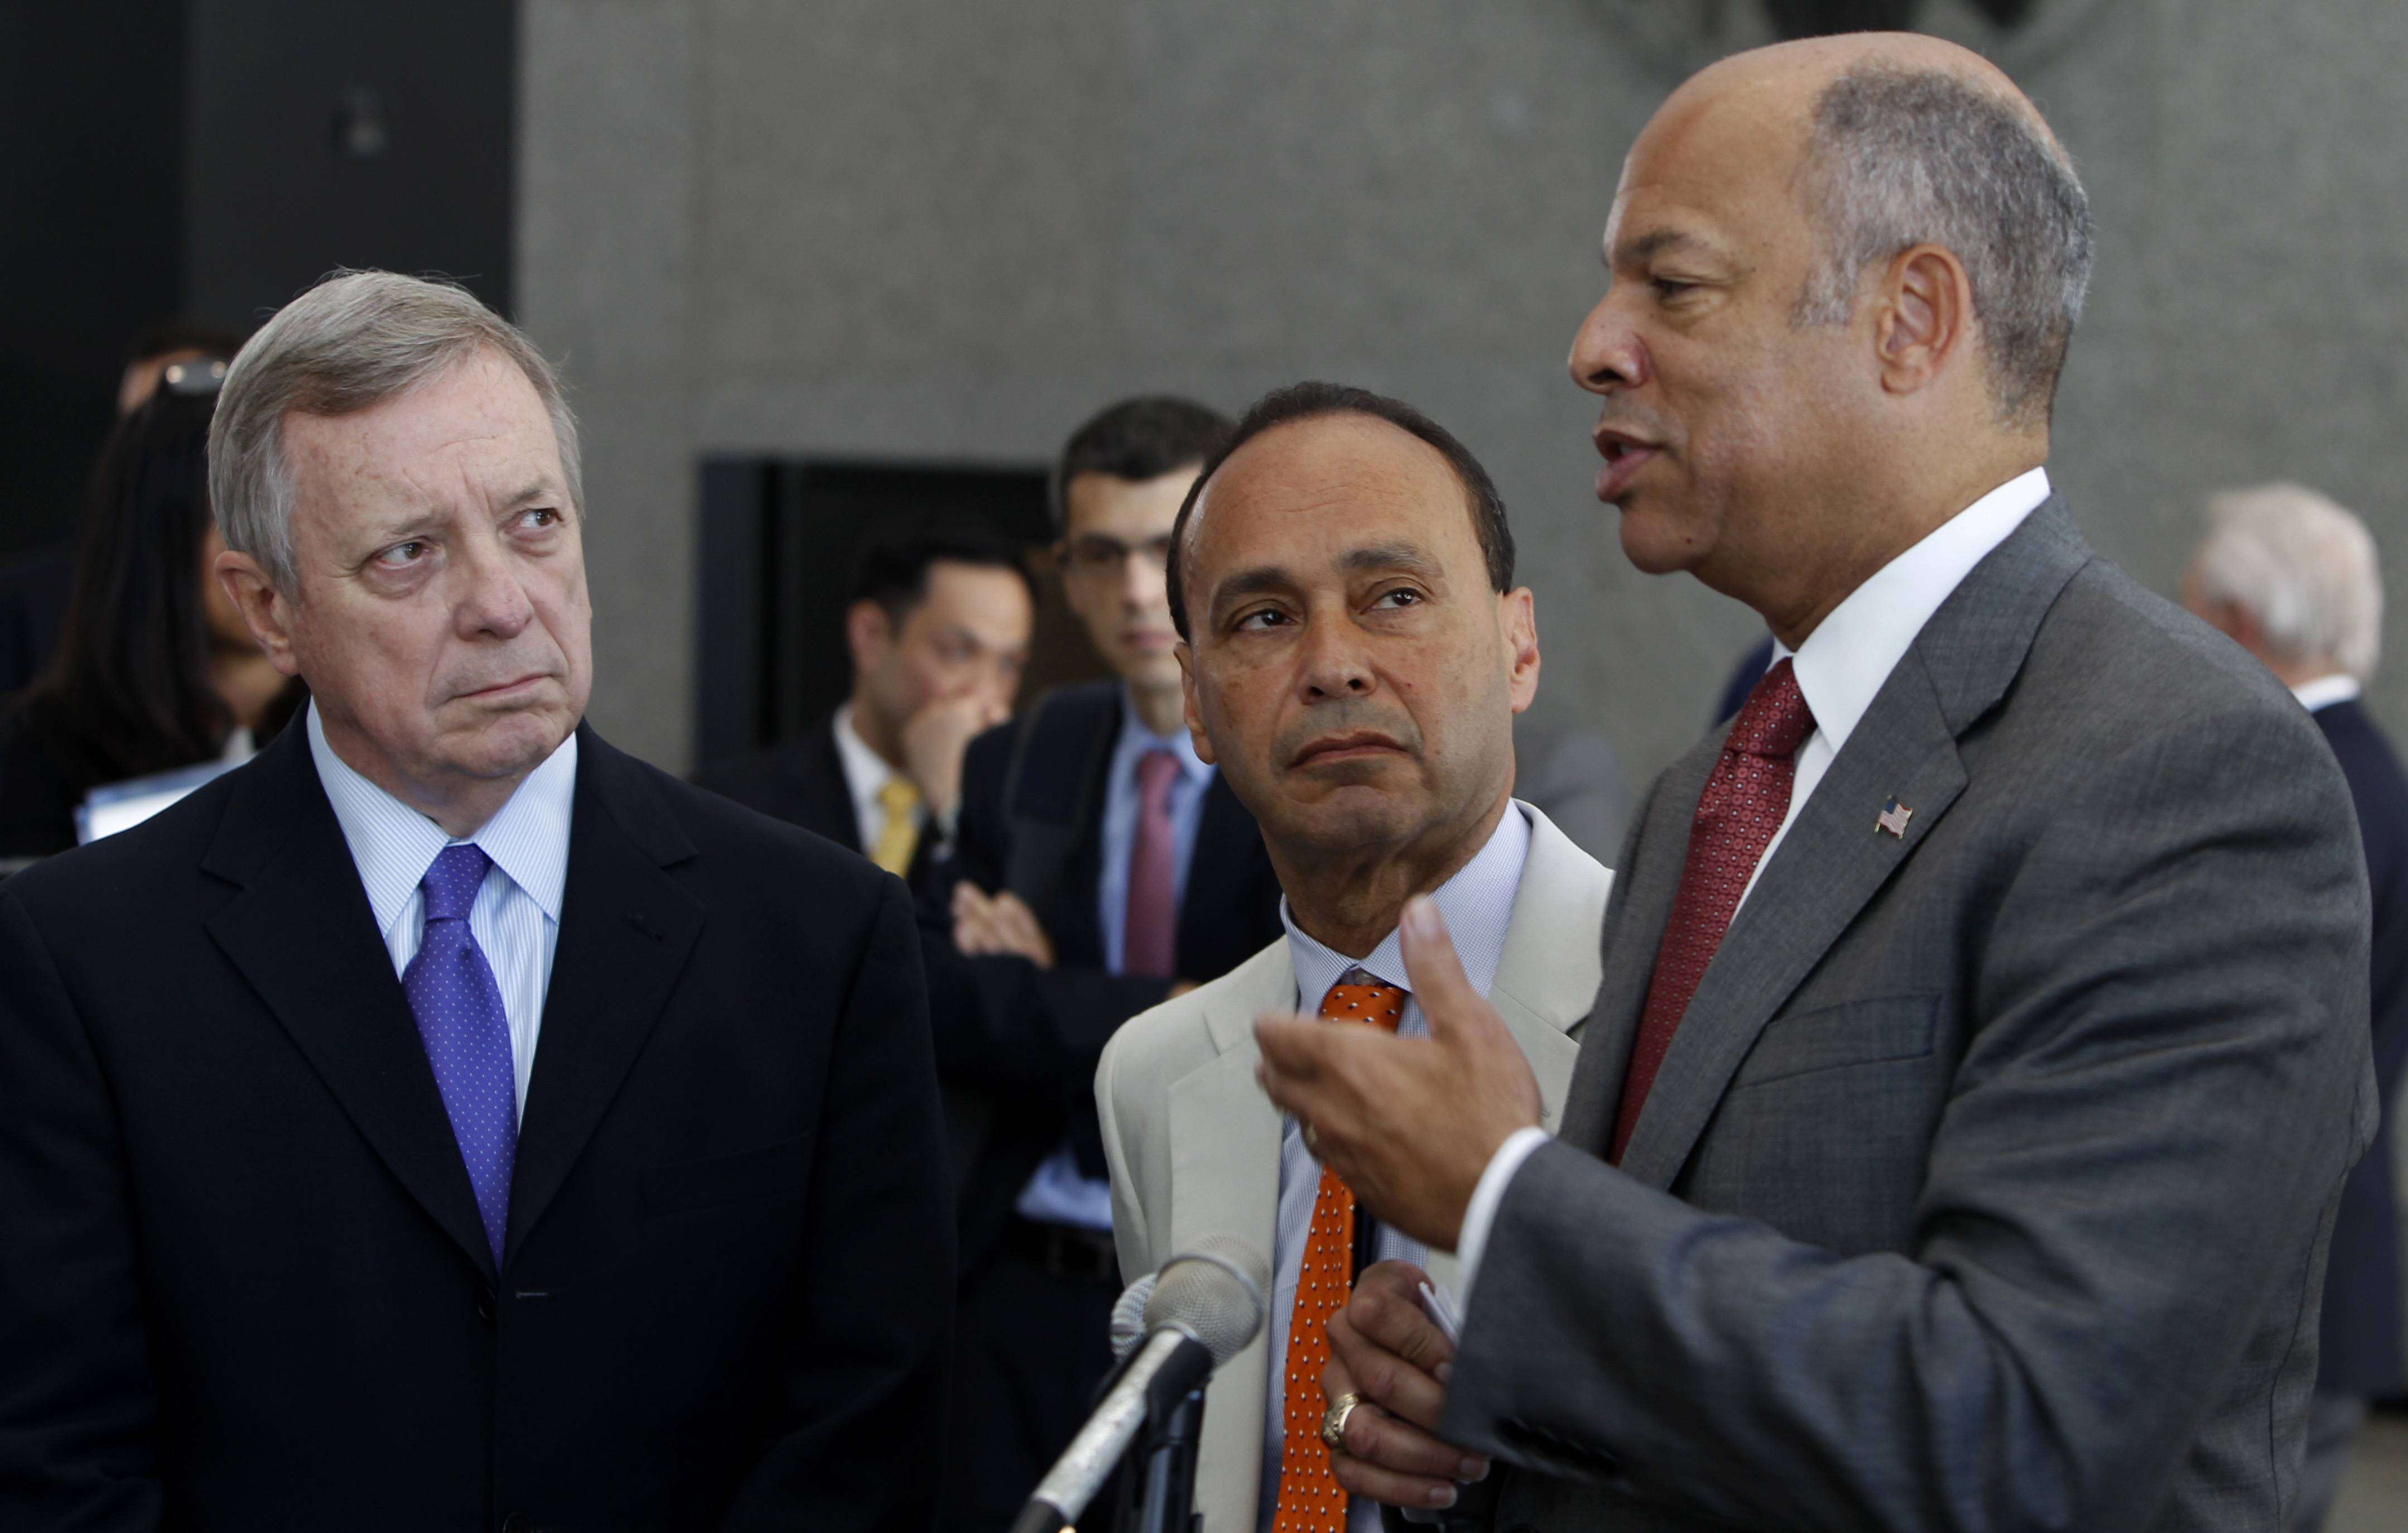 Sen. Dick Durbin and Rep. Luis Gutierrez listen as Secretary of Homeland Security Jeh Johnson speaks during a news conference regarding federal policy on deportations Friday in Chicago.